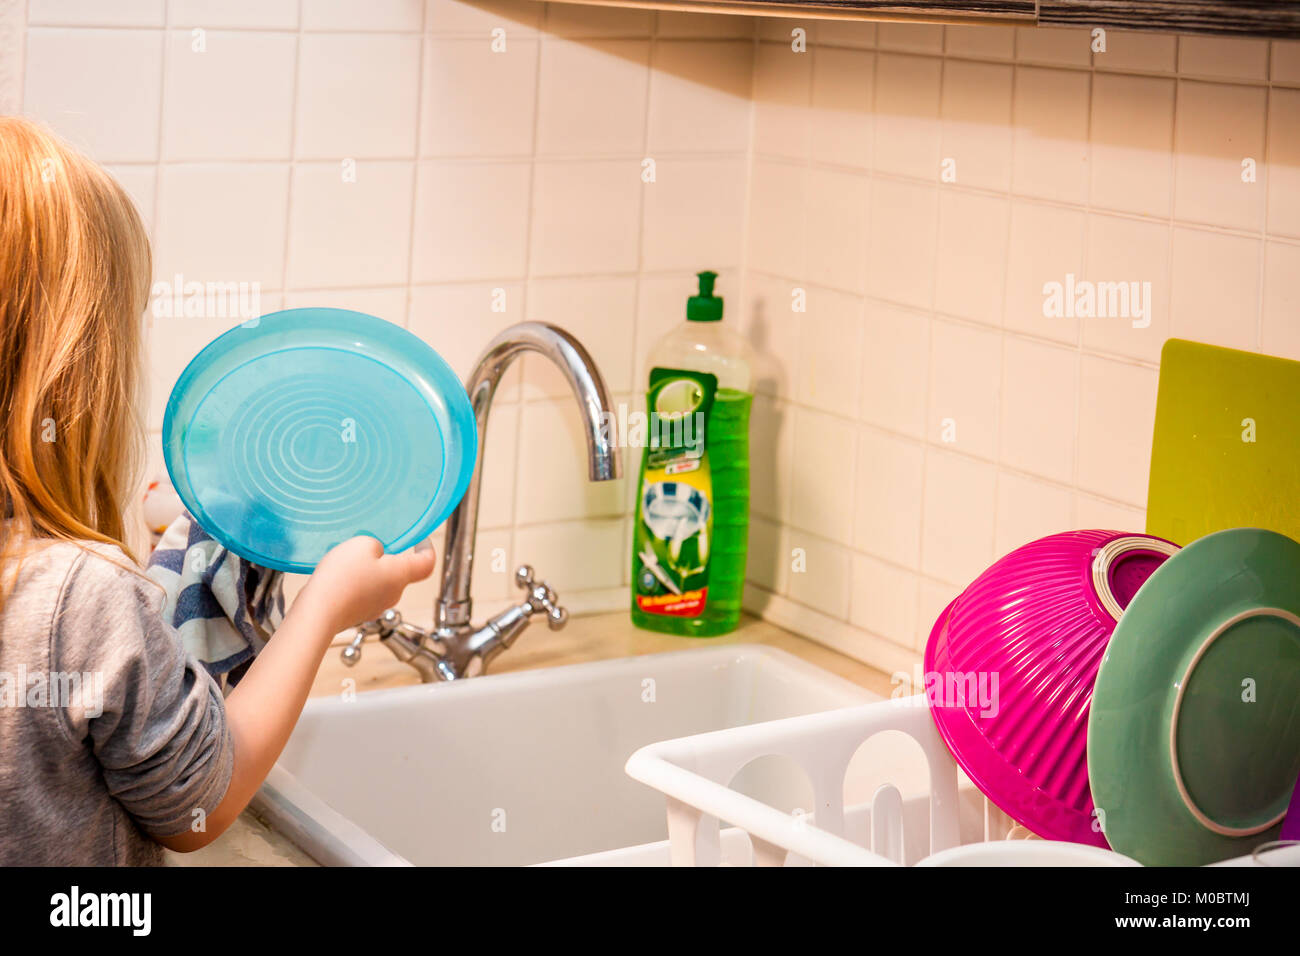 Girl in the kitchen with a plate and towel doing the wash up - Stock Image